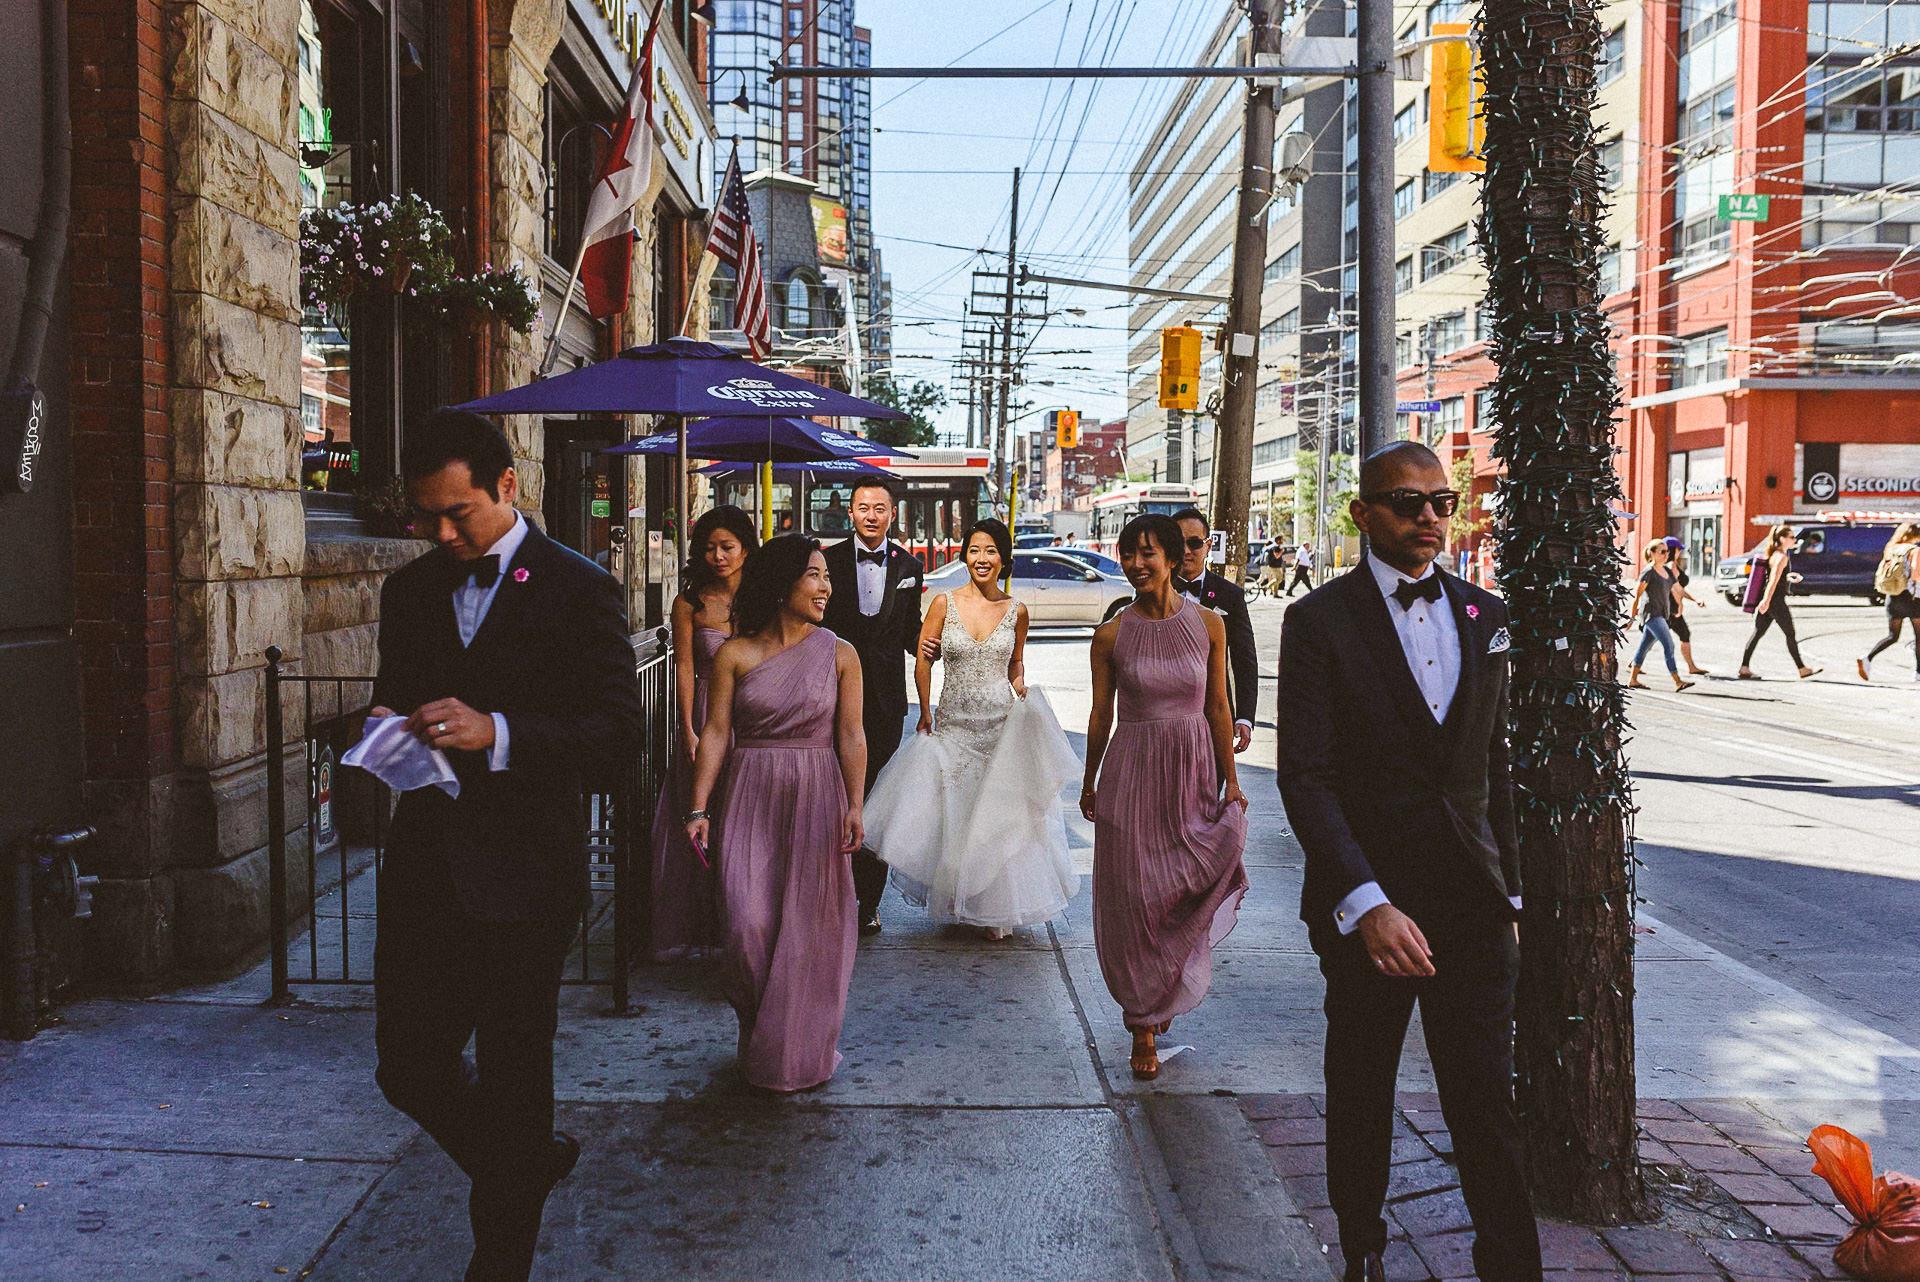 Wedding party walking down Queen St. W